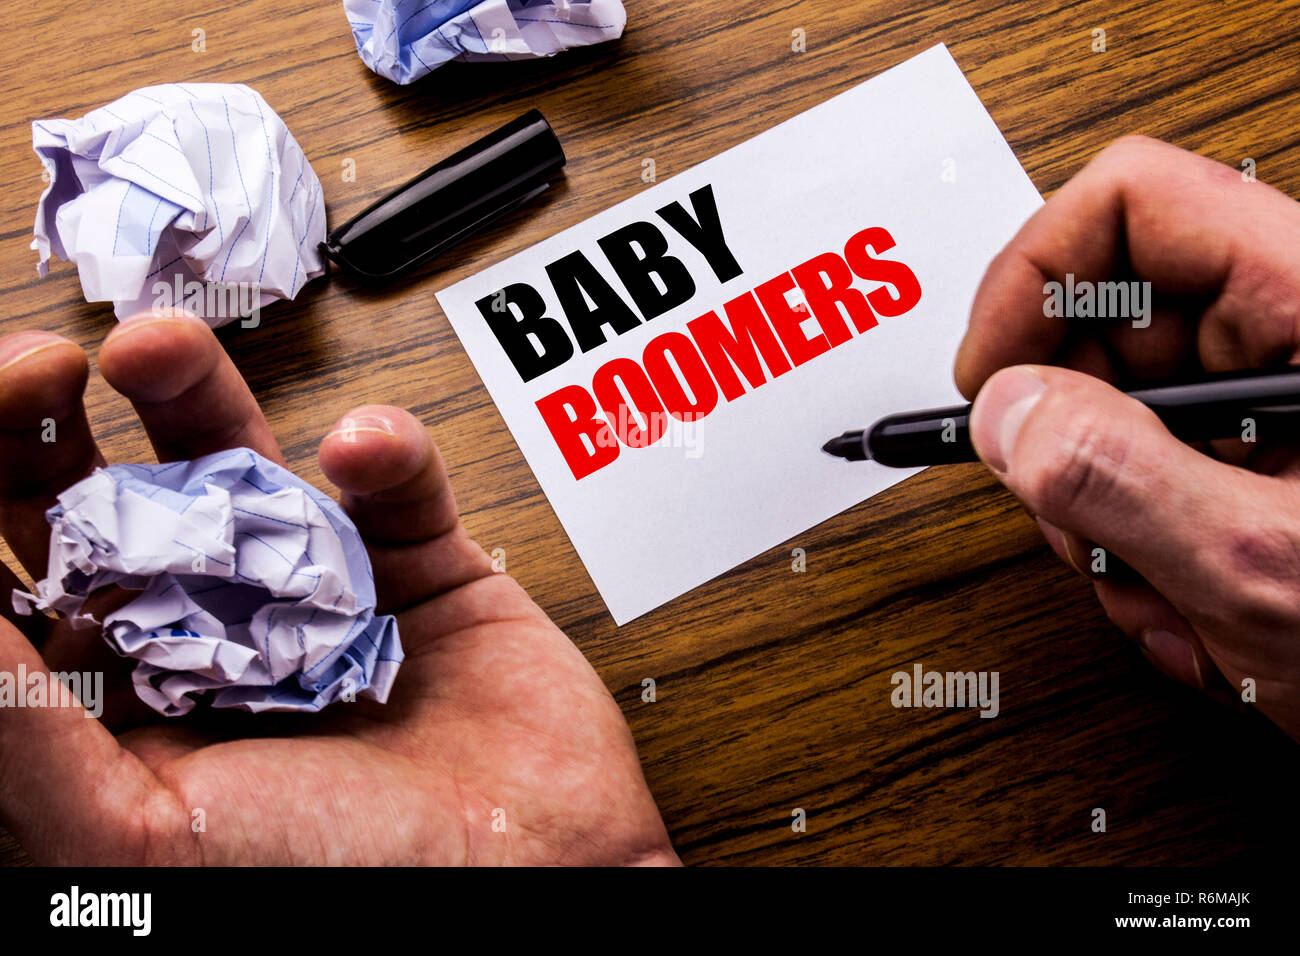 895eb57d89 Handwriting text Baby Boomers. Concept for Demographic Generation written  on notebook note paper on the wooden background with folded paper meaning  thinking ...